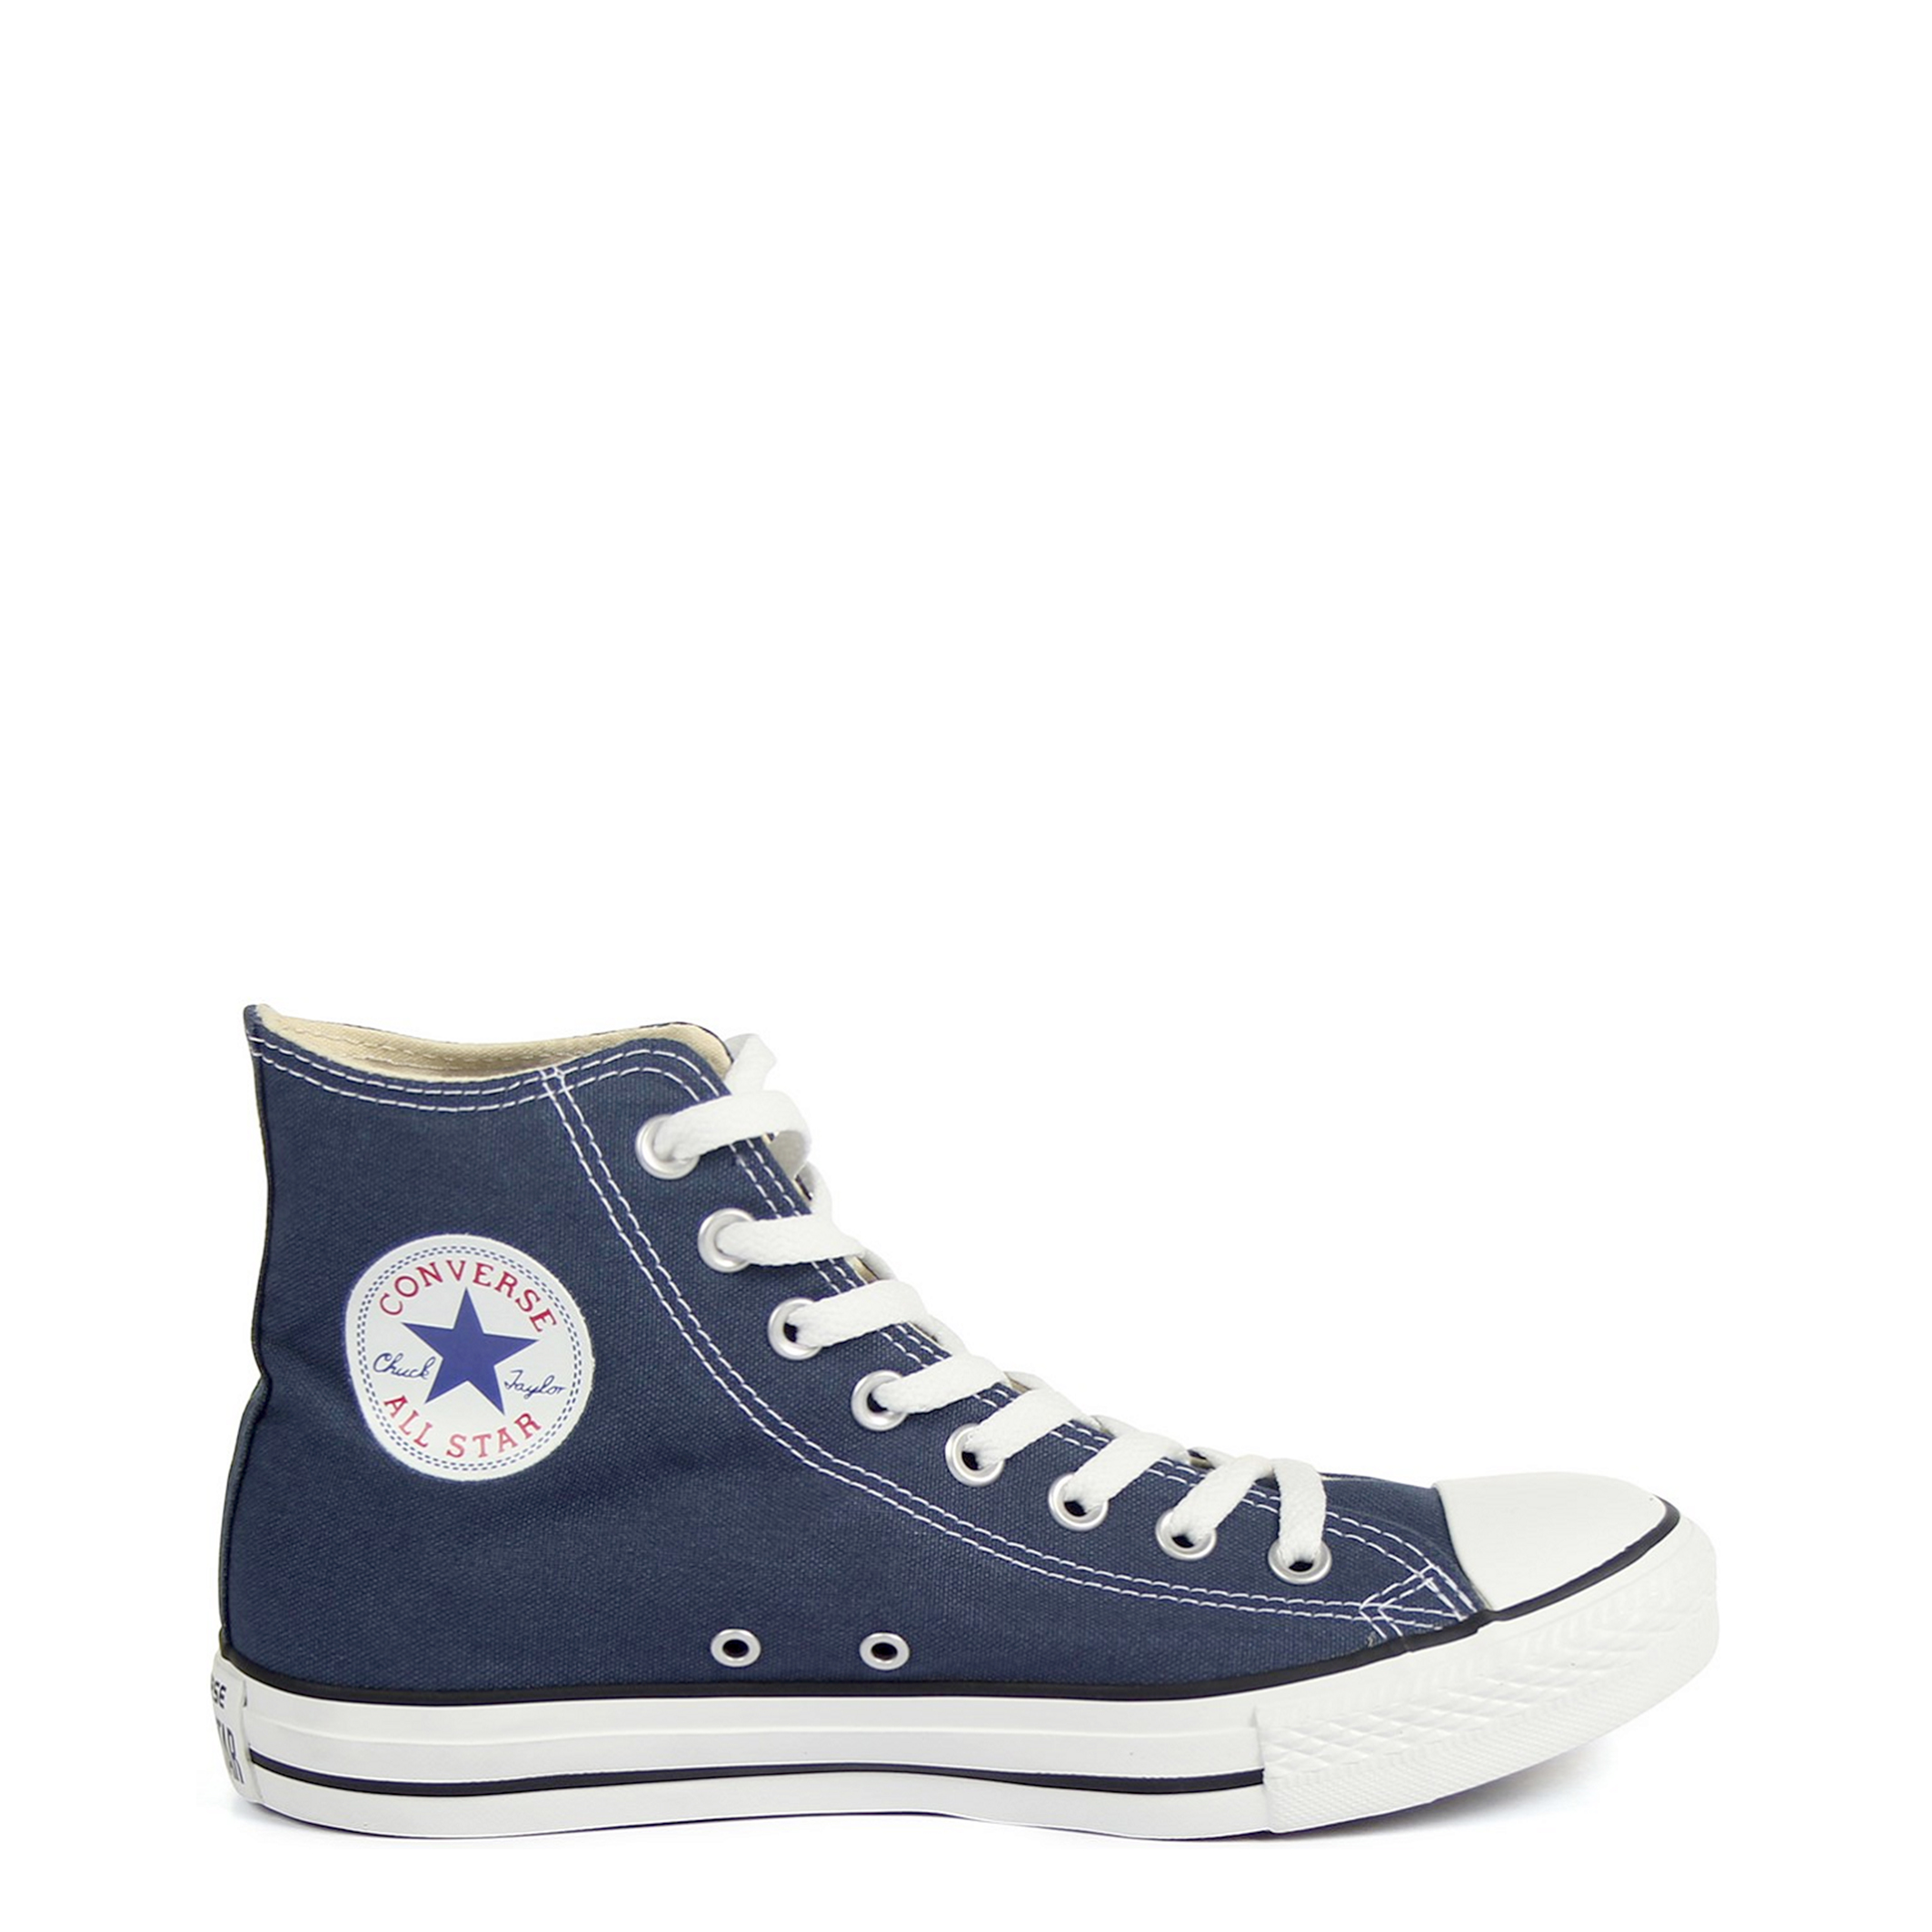 Navy Shoes Converse Chuck Taylor All Star M9622C